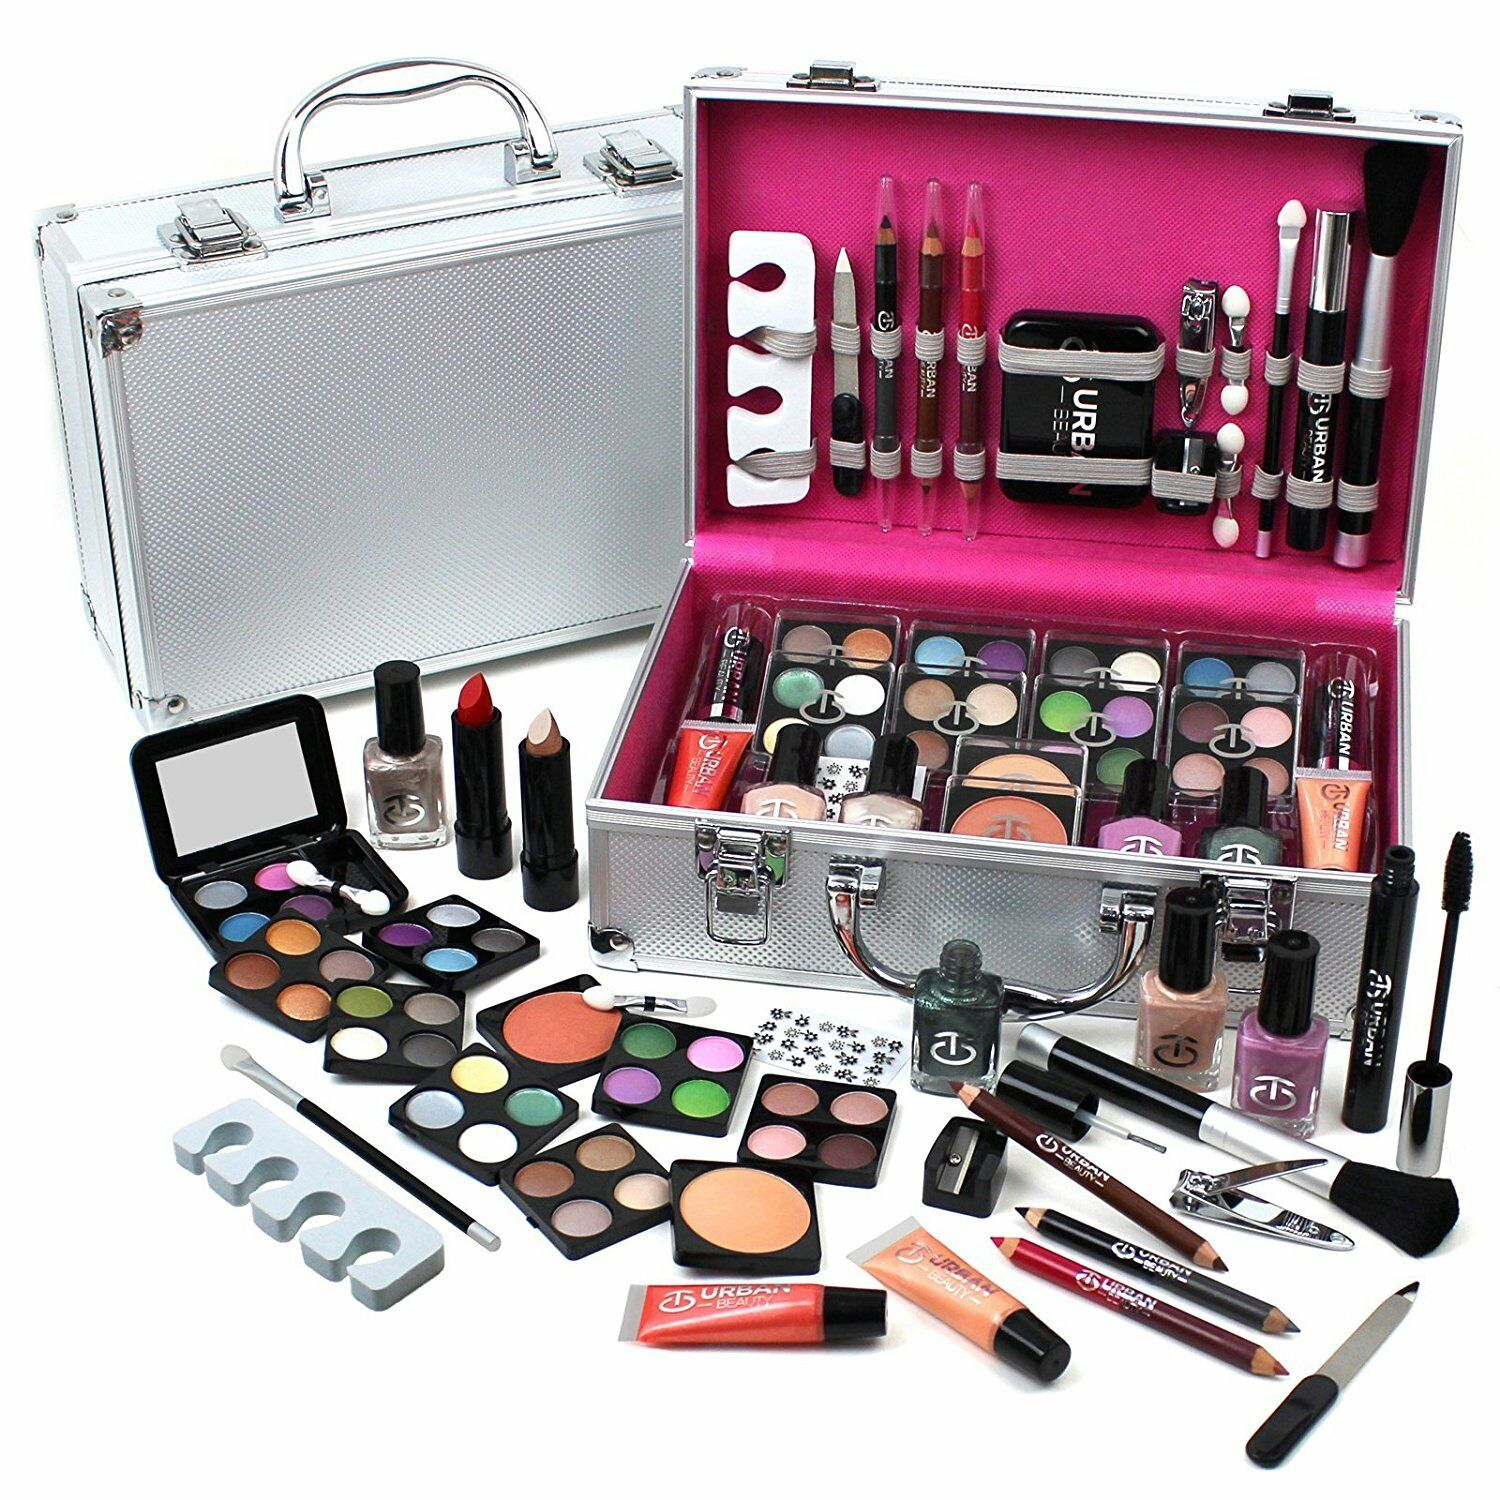 Urban Beauty Make Up Set & Vanity Case 26% OFF £21.99 @ eBay